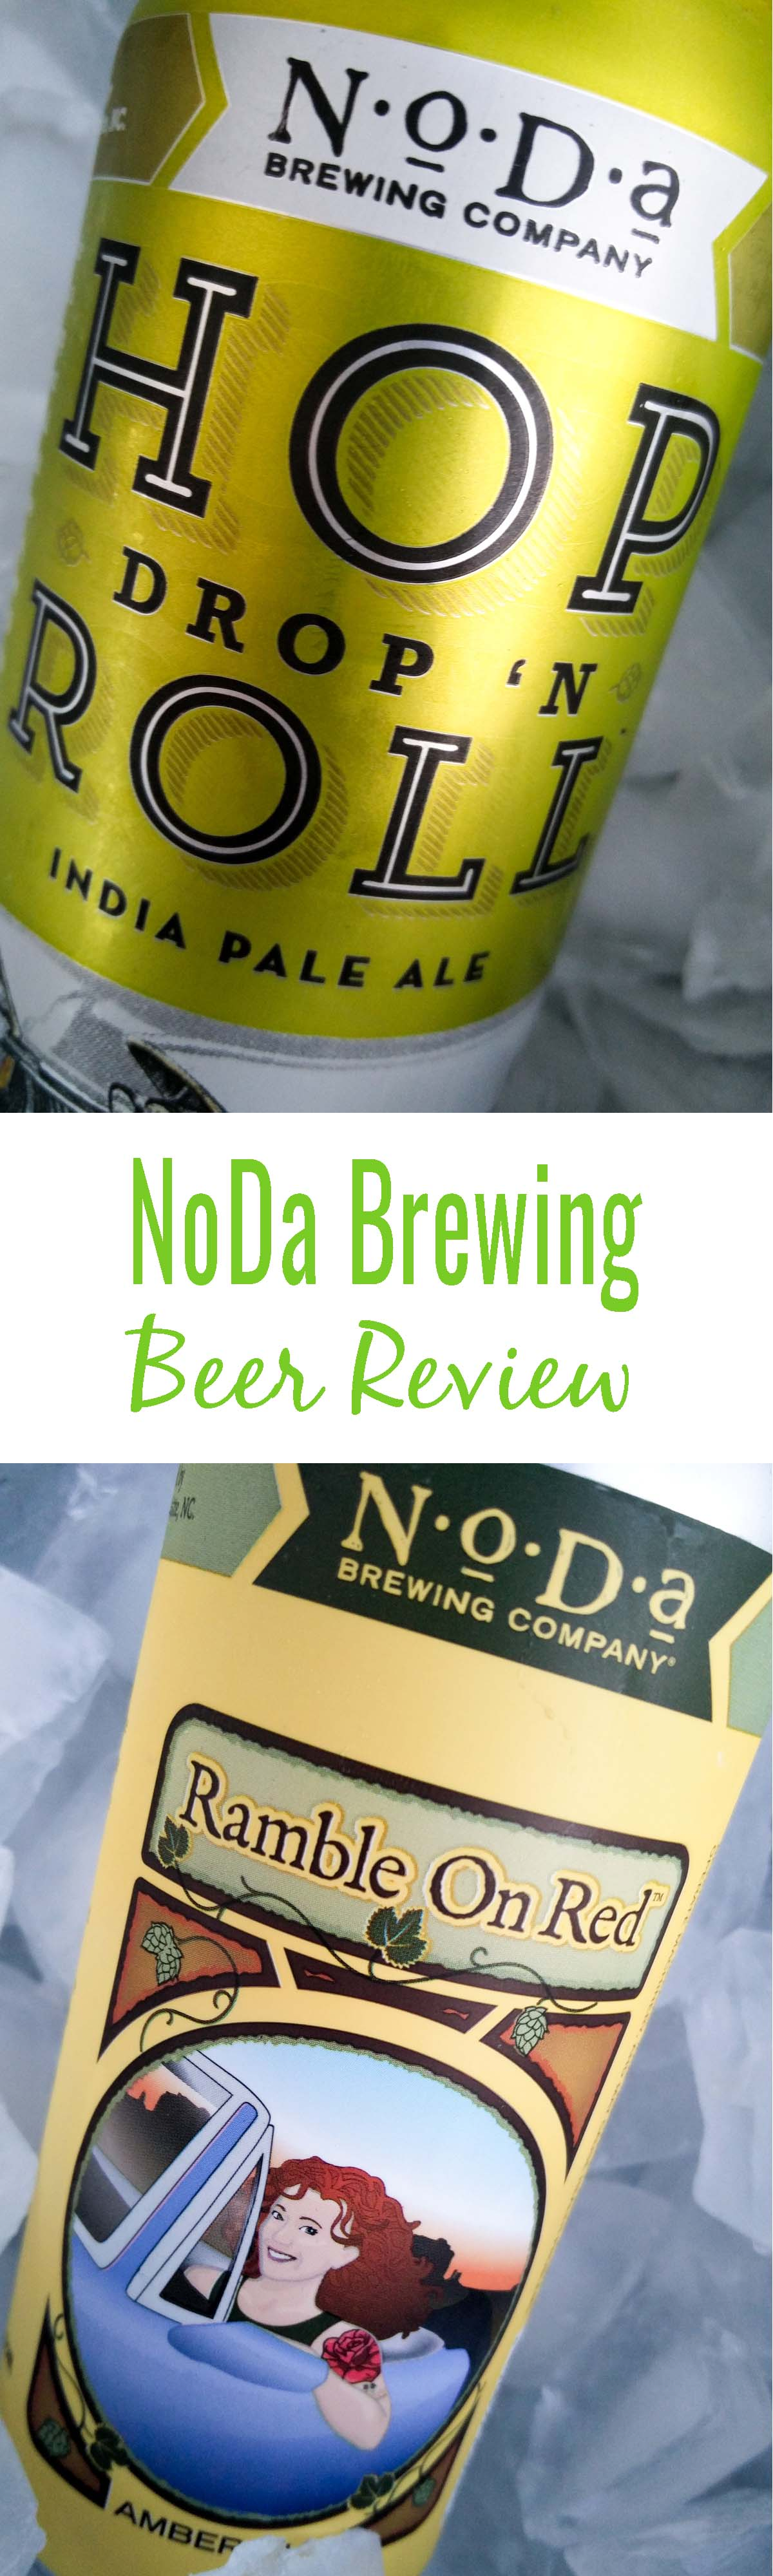 NoDa Brewing Hop Drop N Roll and Ramble on Red Review – Two of Noda Brewing's flagship beers. Oh, and the Hop Drop N Roll helped put the brewer on the map!